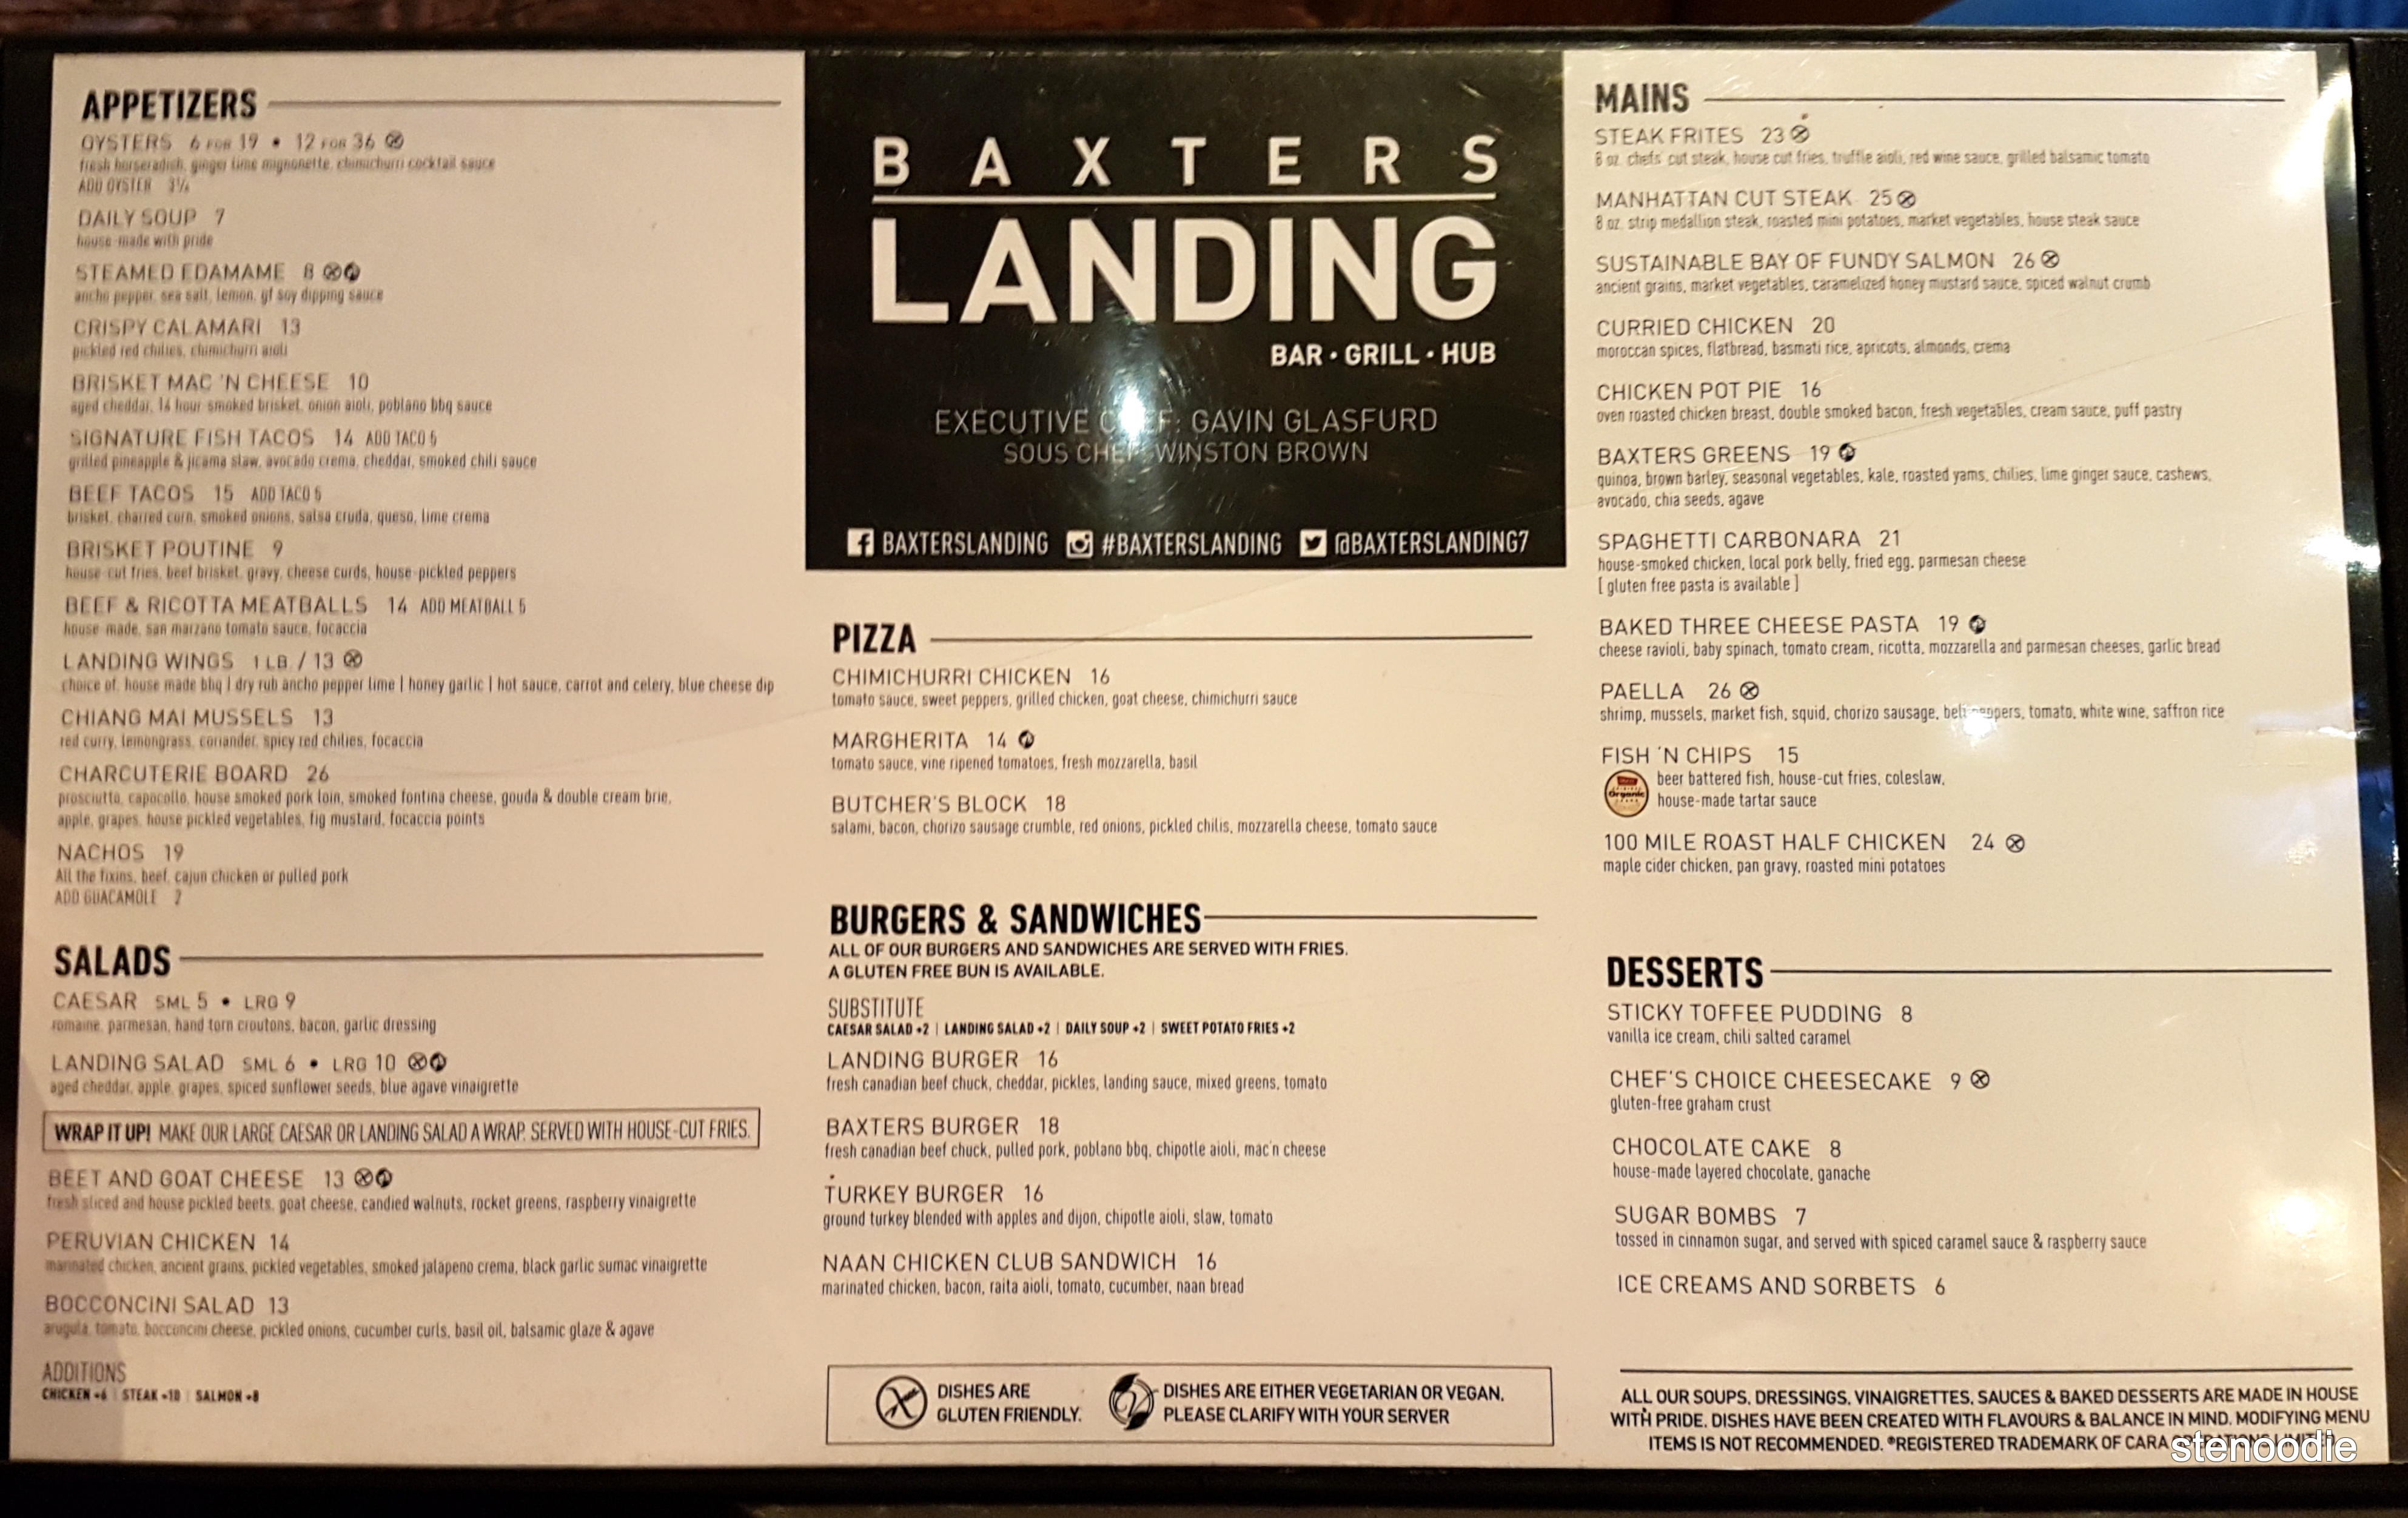 Baxters Landing dinner menu and prices